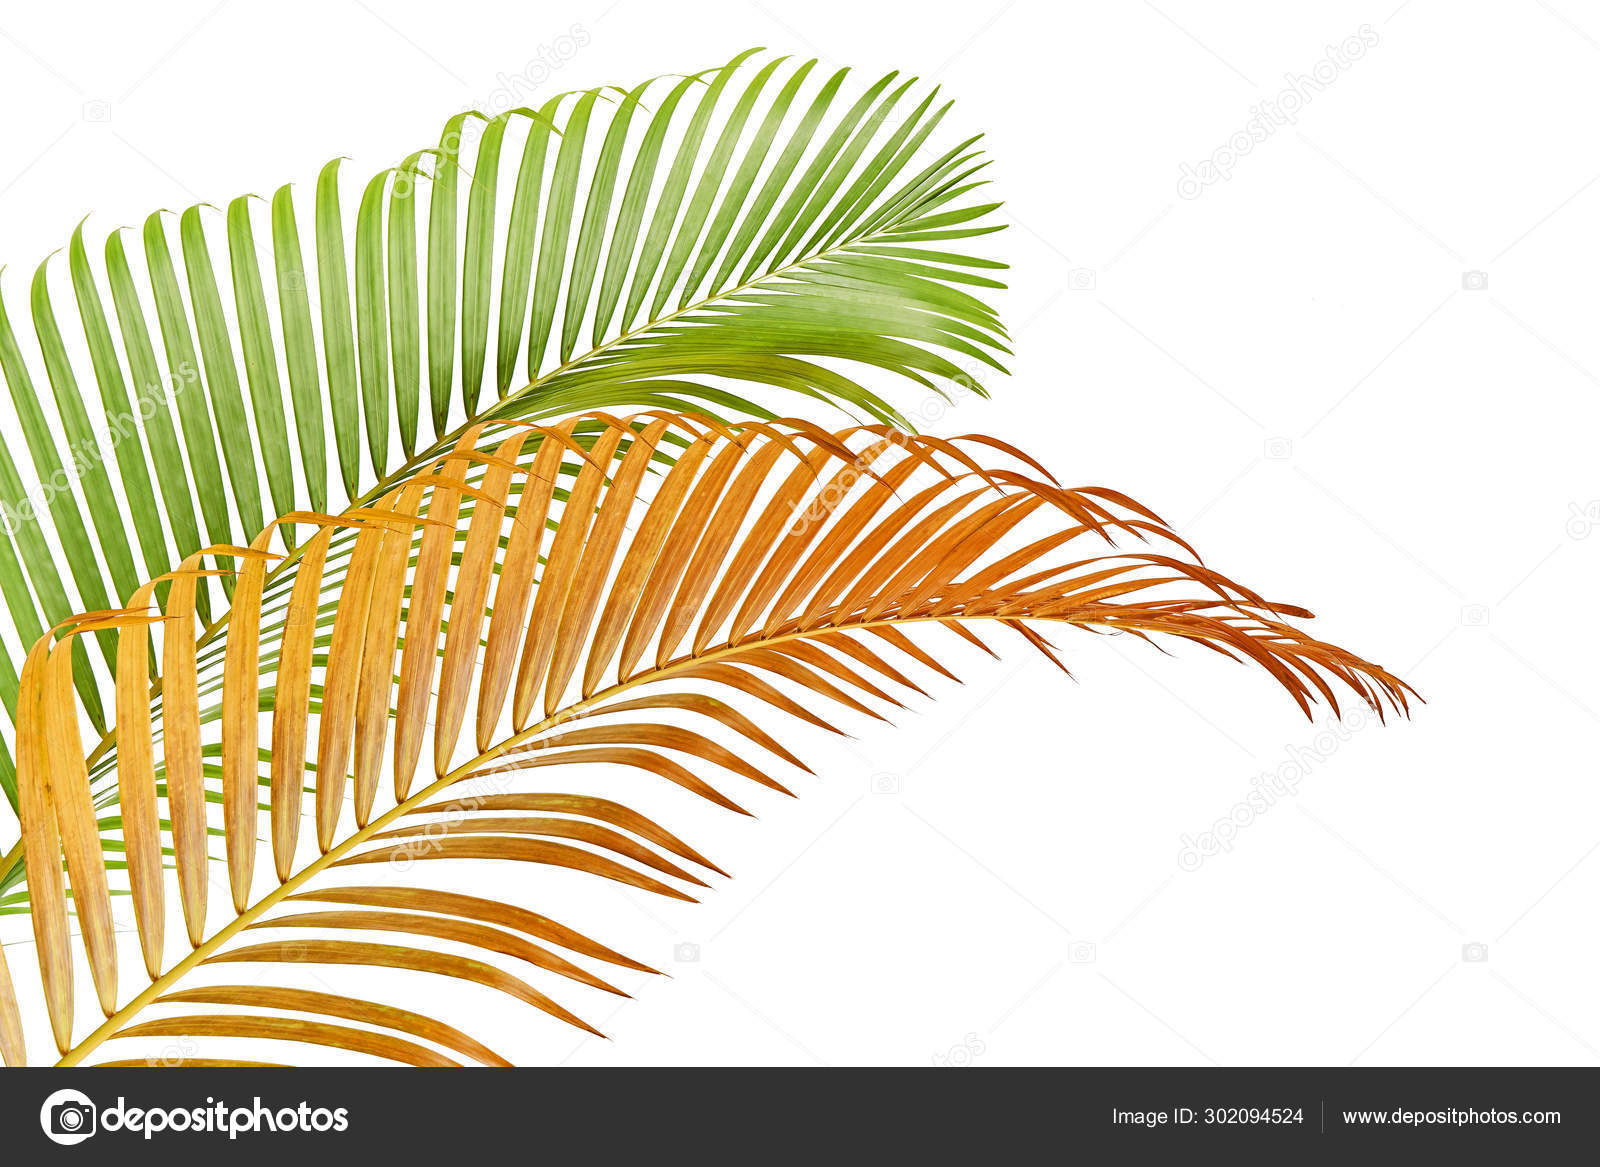 Yellow Palm Leaves Dypsis Lutescens Golden Cane Palm Areca Palm Stock Photo Image By Dewins 302094524